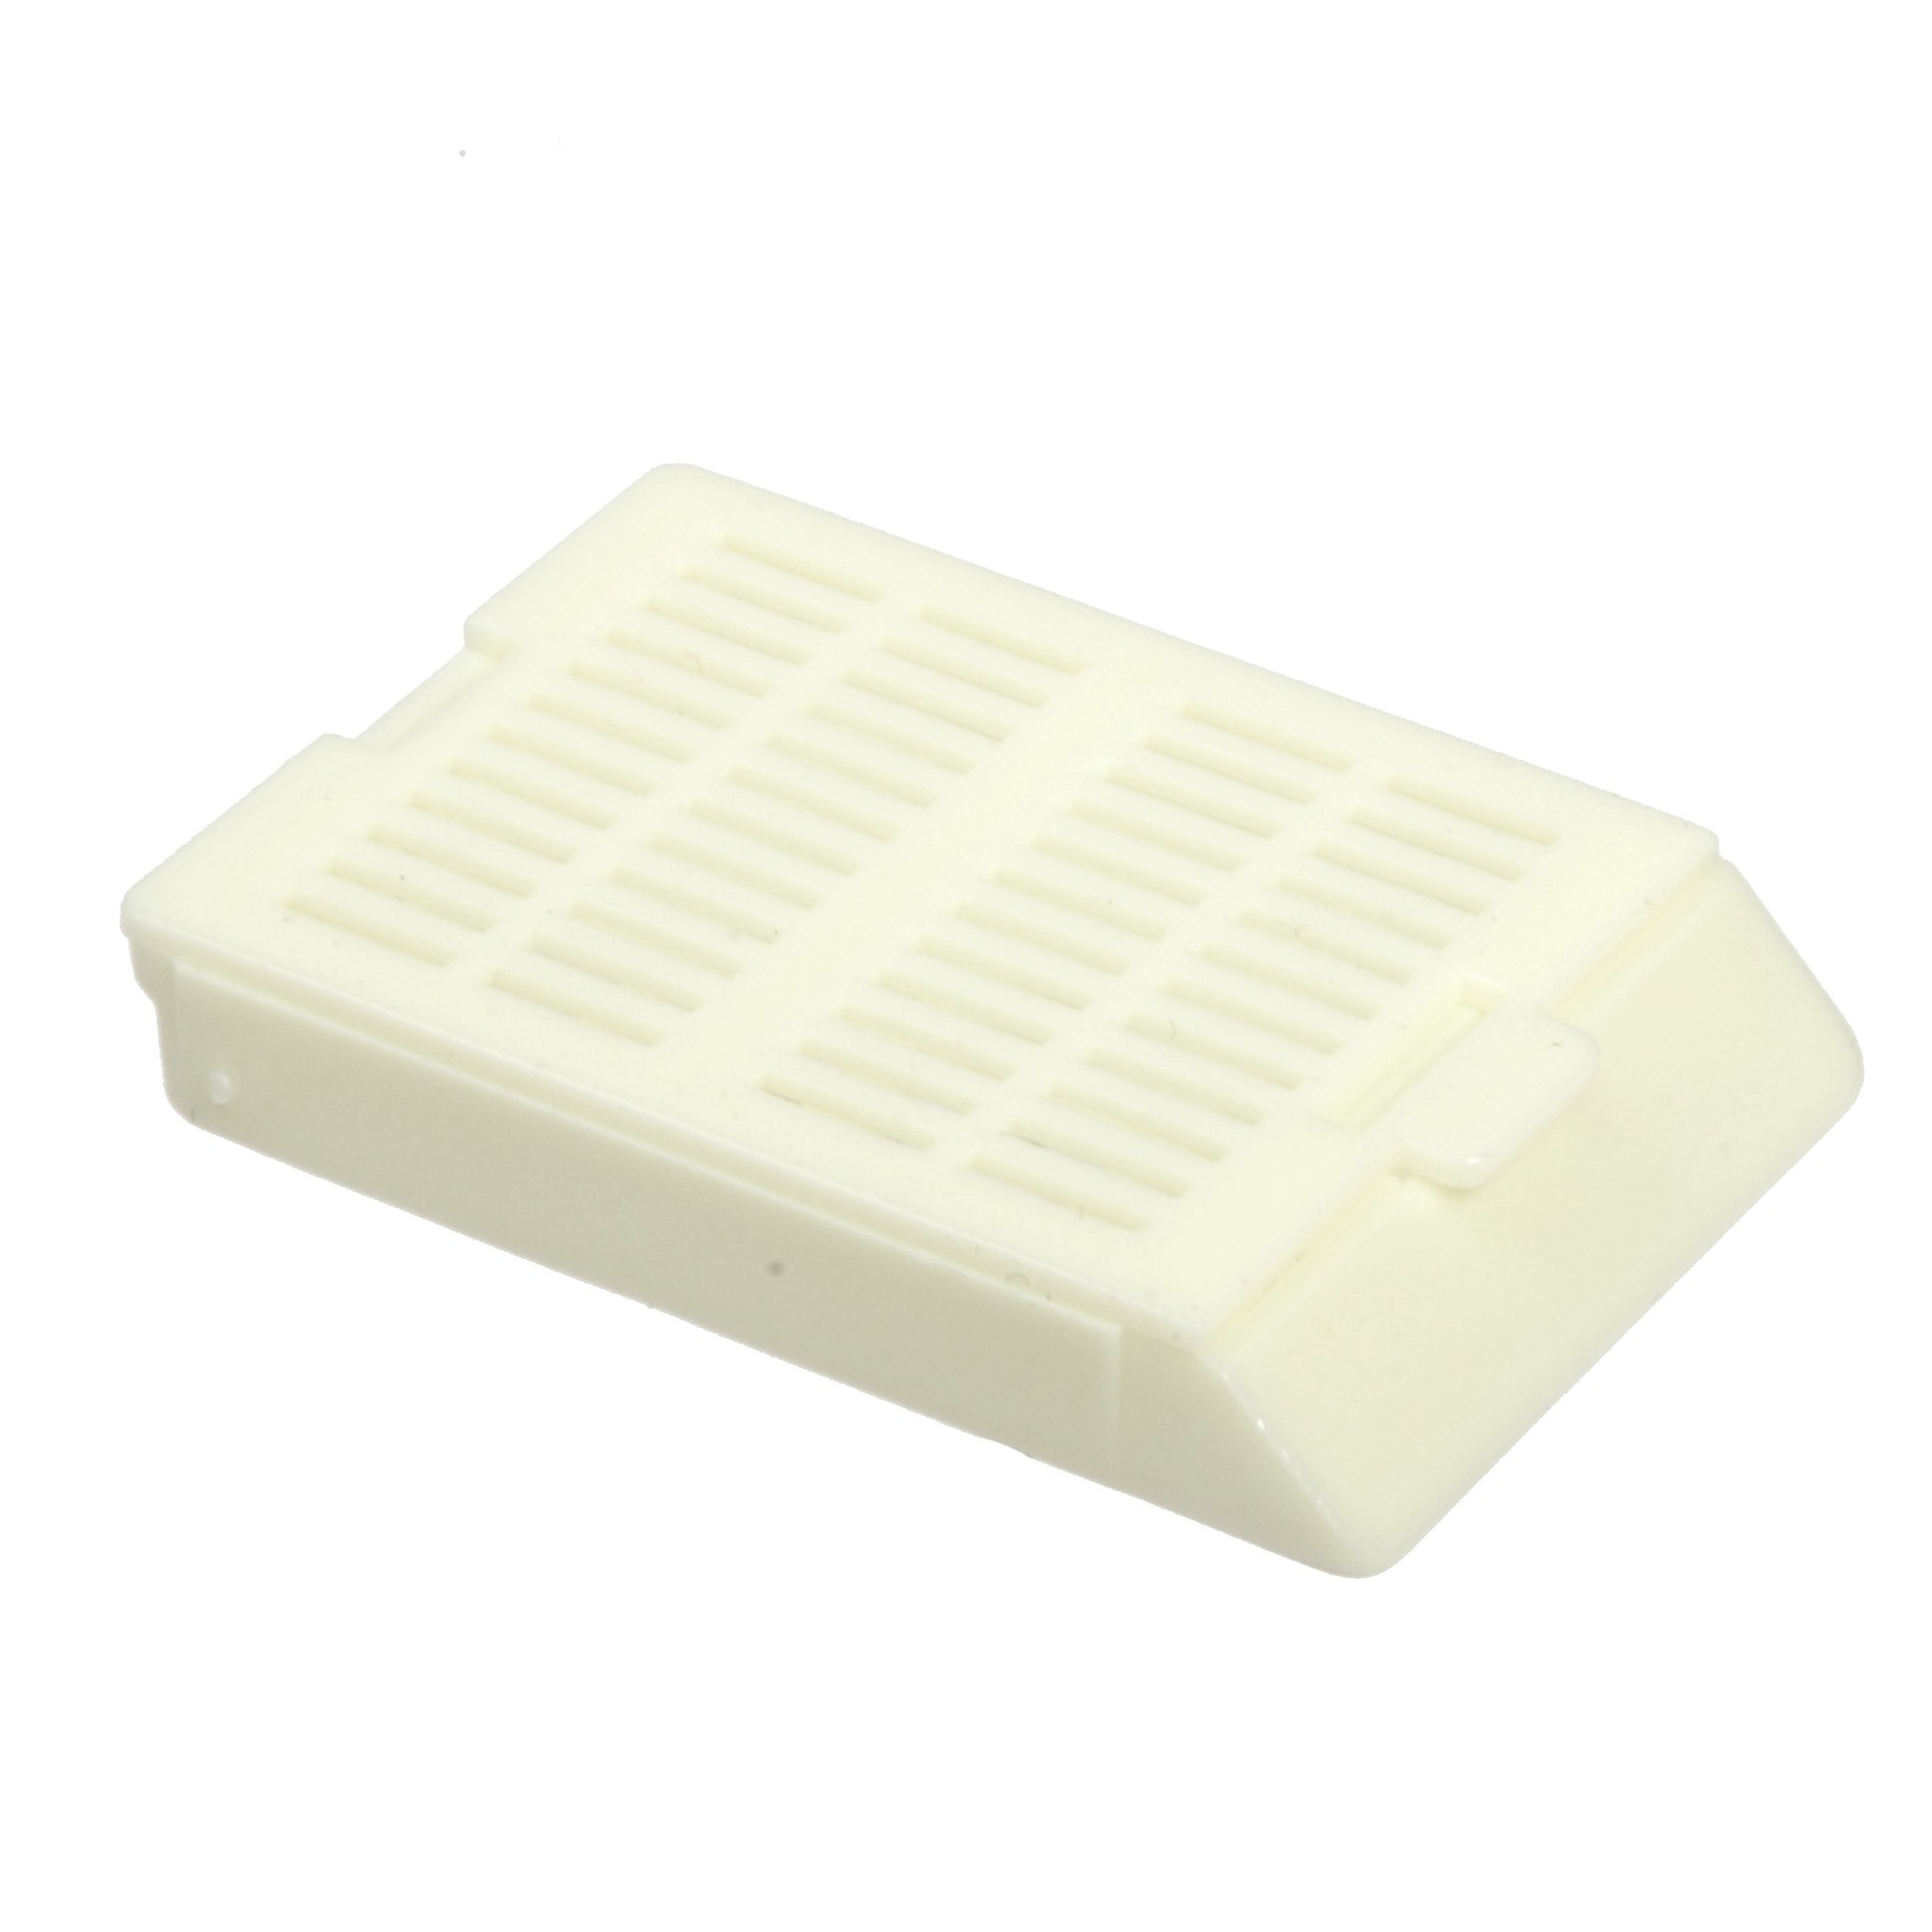 Bio Plas 6050 White Acetyl Plastic Histo Plas Uni-Capsette Tissue Embedding Cassettes with Detachable Lid (Pack of 500)